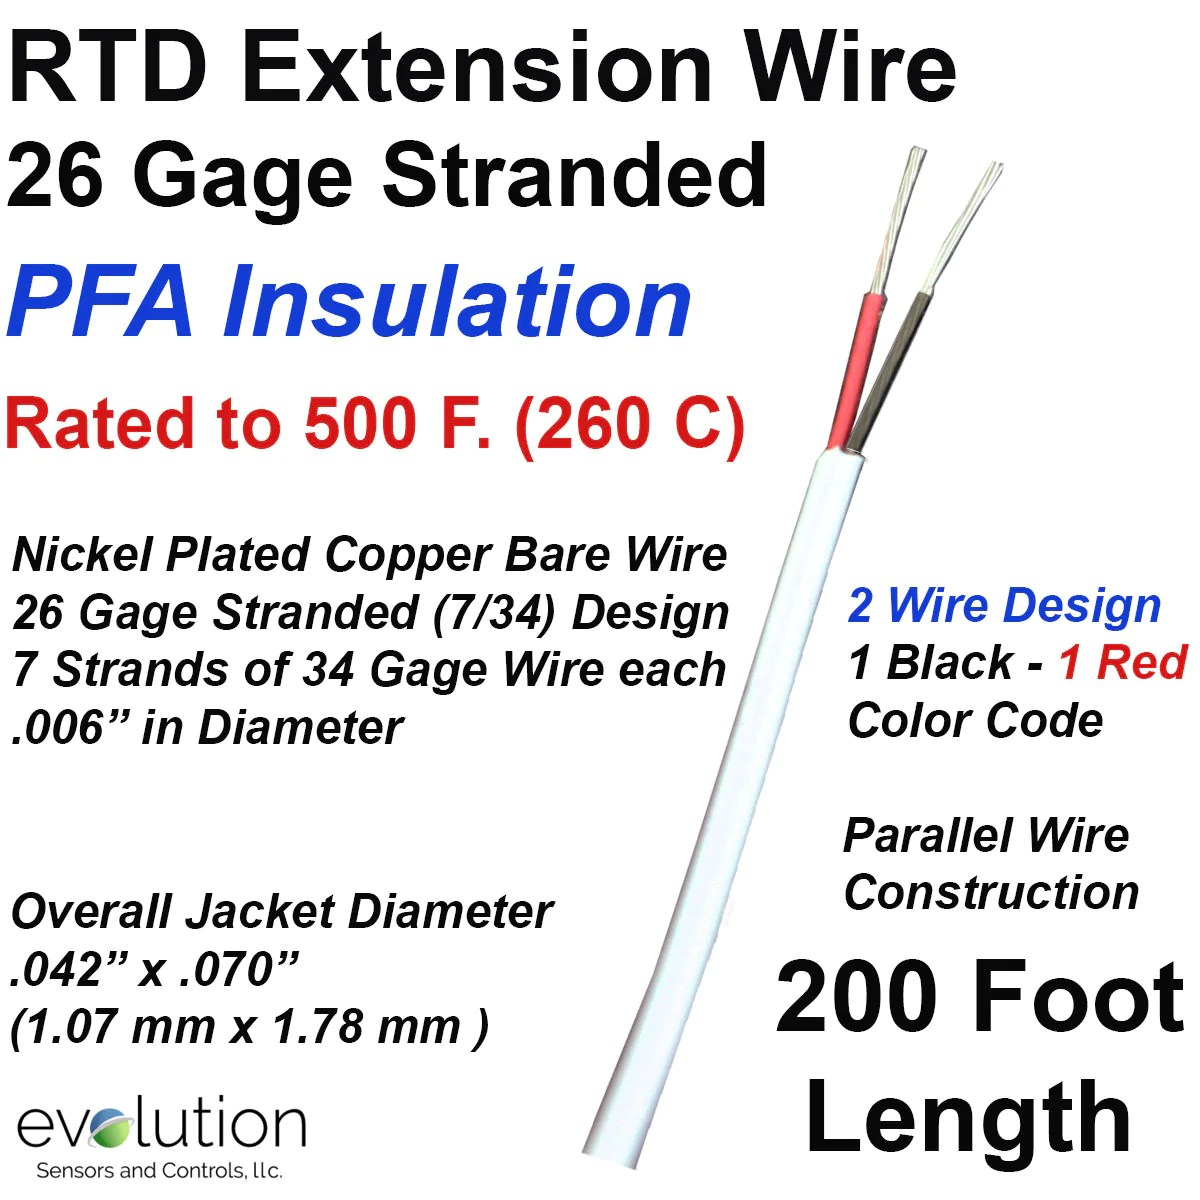 medium resolution of rtd extension wire 200 foot length 26 gage stranded 2 wire design rtd wiring color code